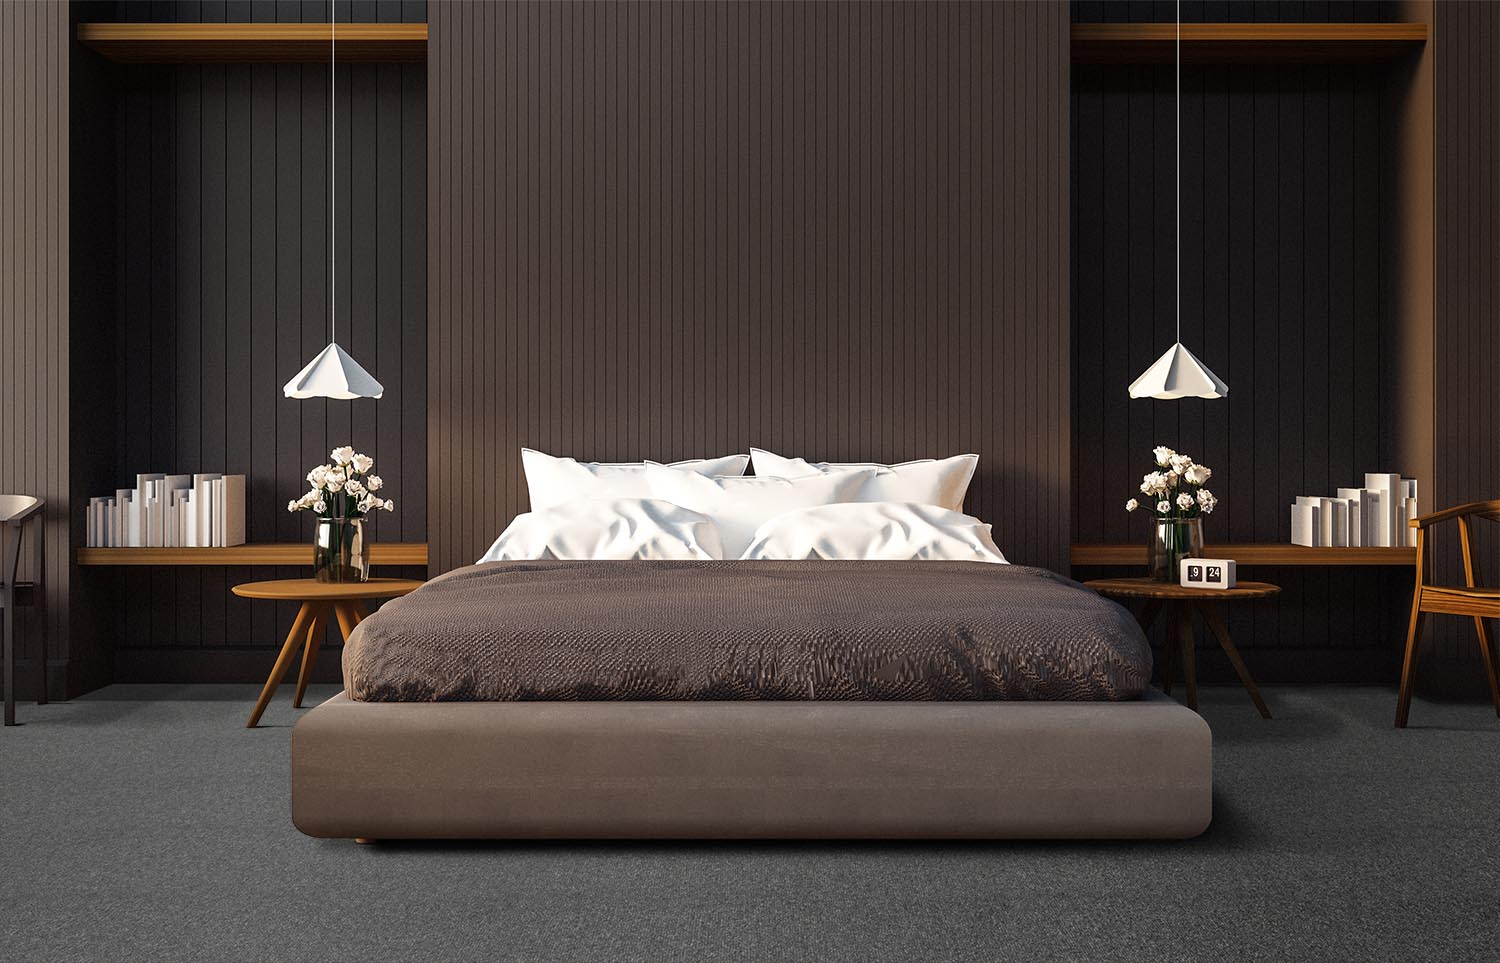 Influence - Daily Impact contemporary bedroom